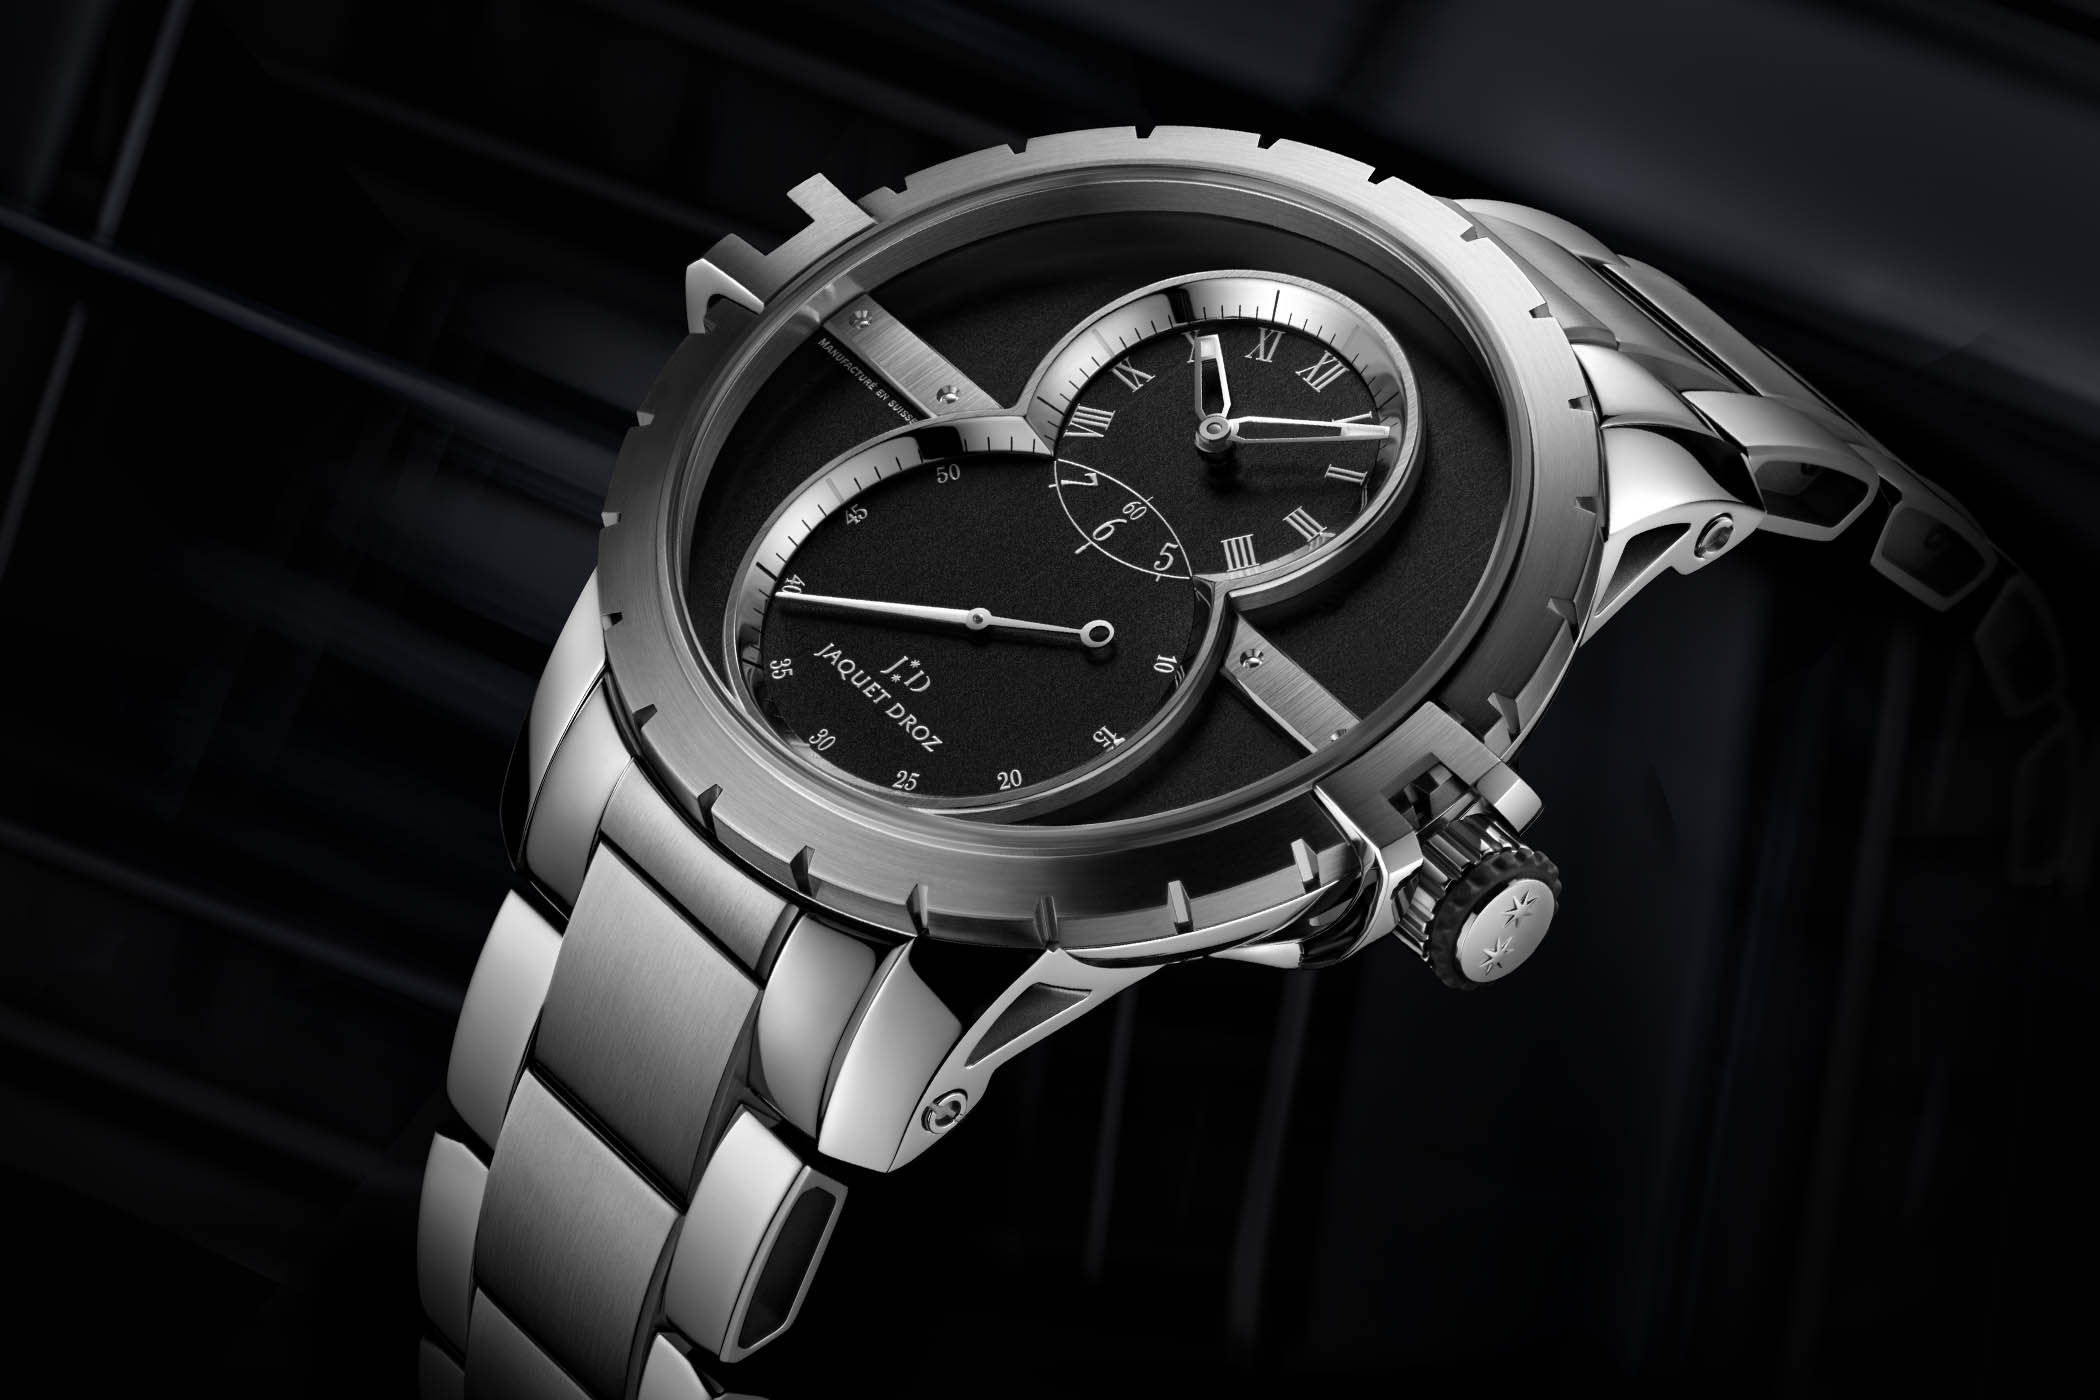 Introducing – The New Sporty Jaquet Droz Collection, the Grande Seconde SW